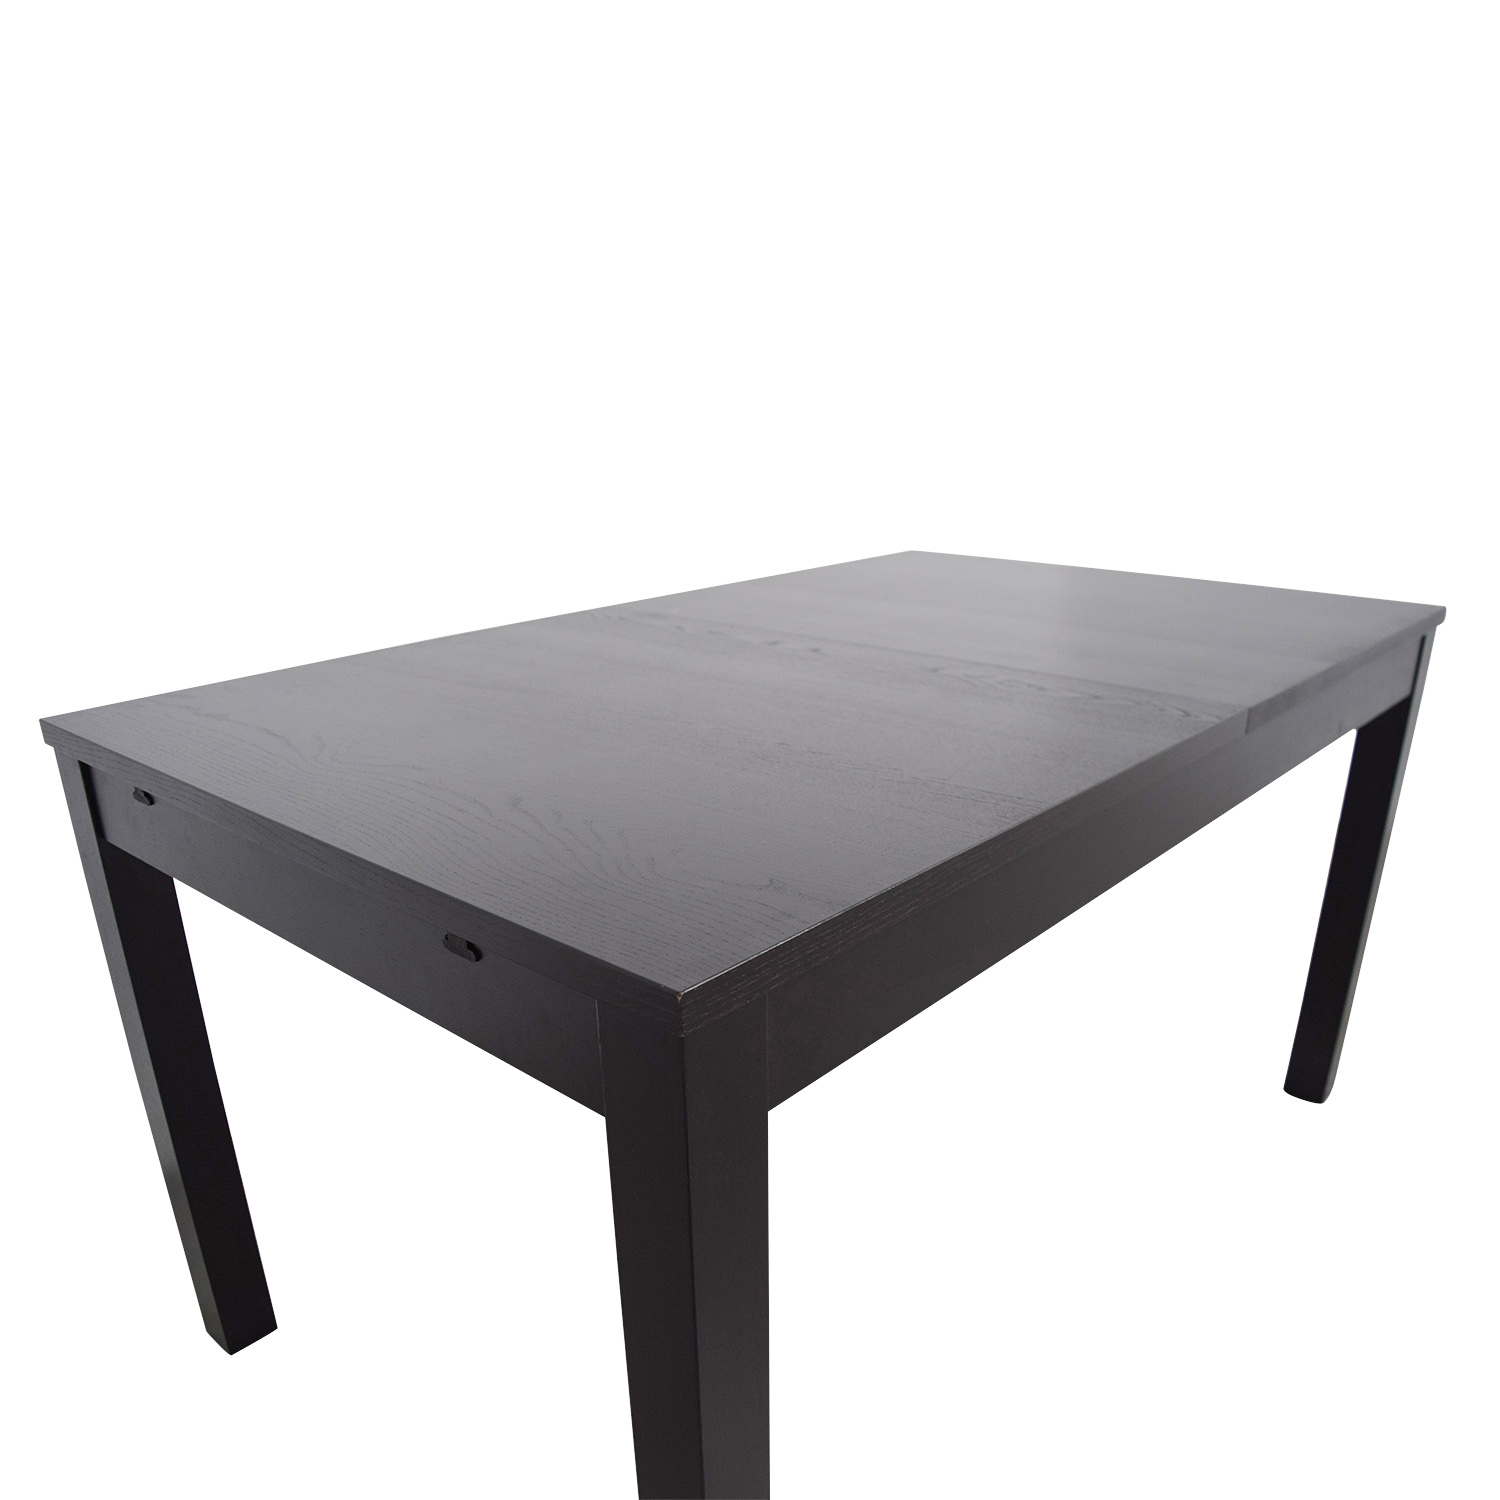 88 off ikea ikea bjursta extendable table tables. Black Bedroom Furniture Sets. Home Design Ideas